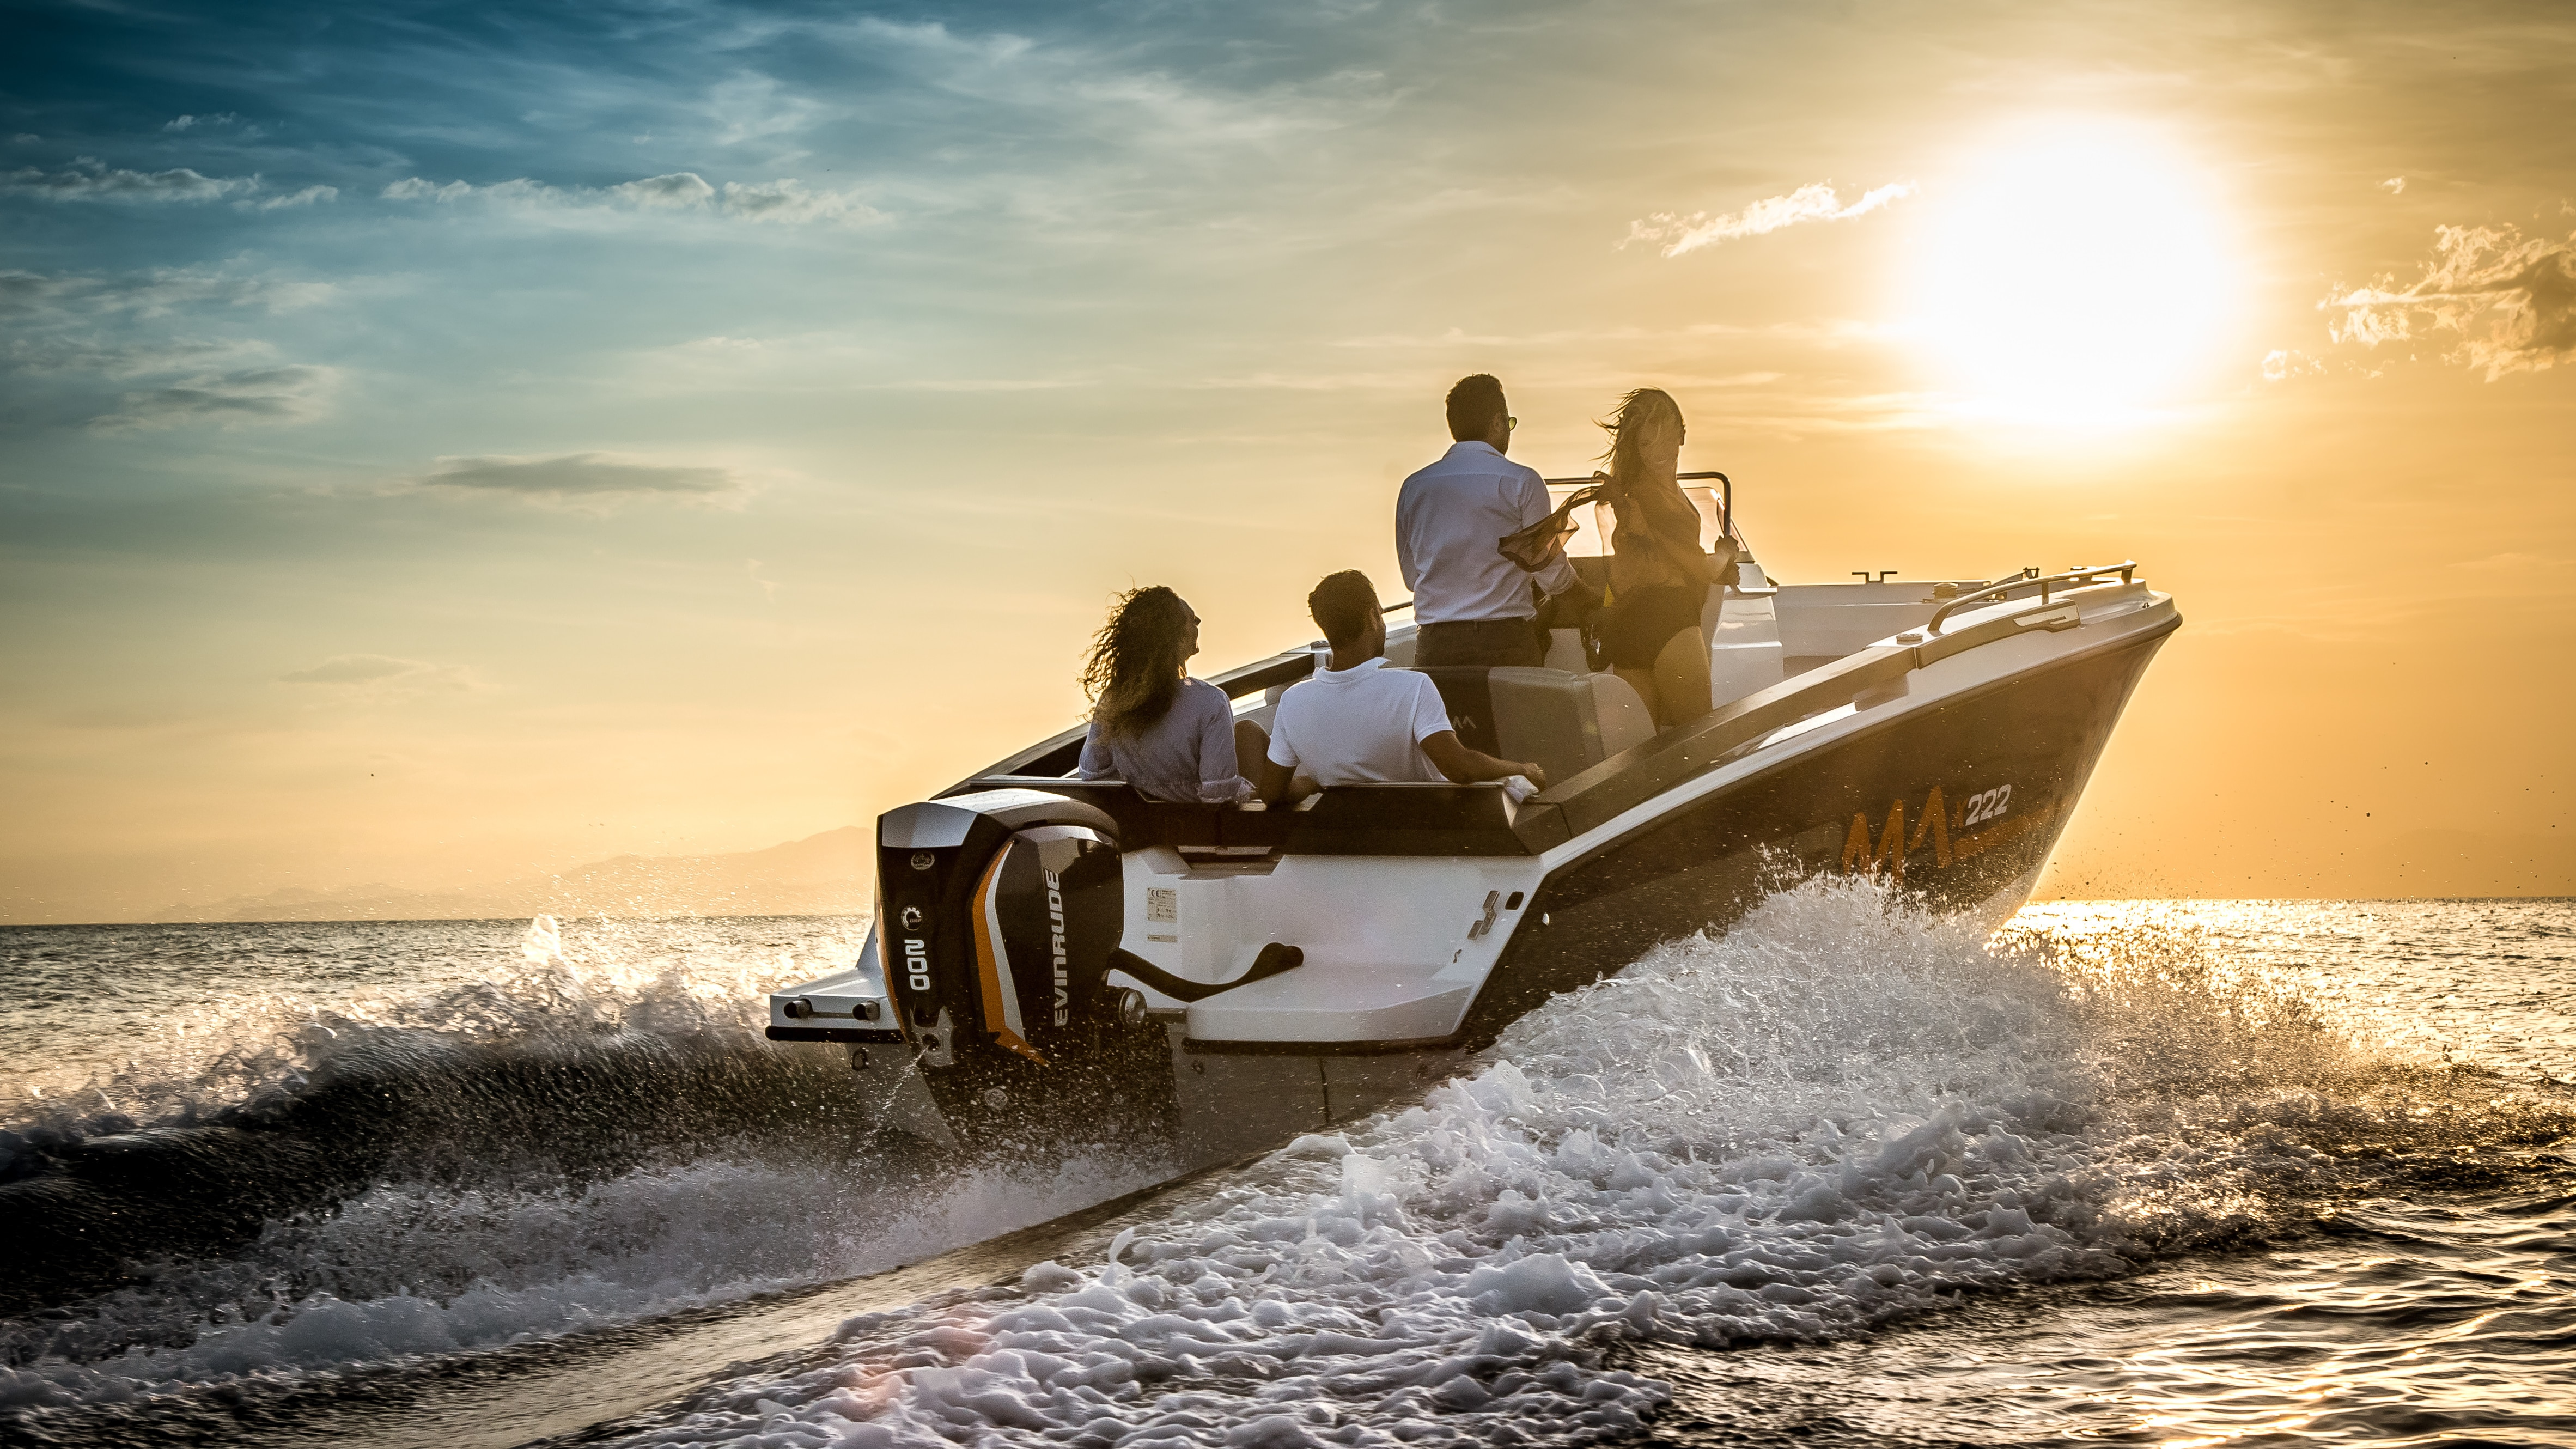 Four people on a boat yielding an Evinrude motor driving towards the sunset